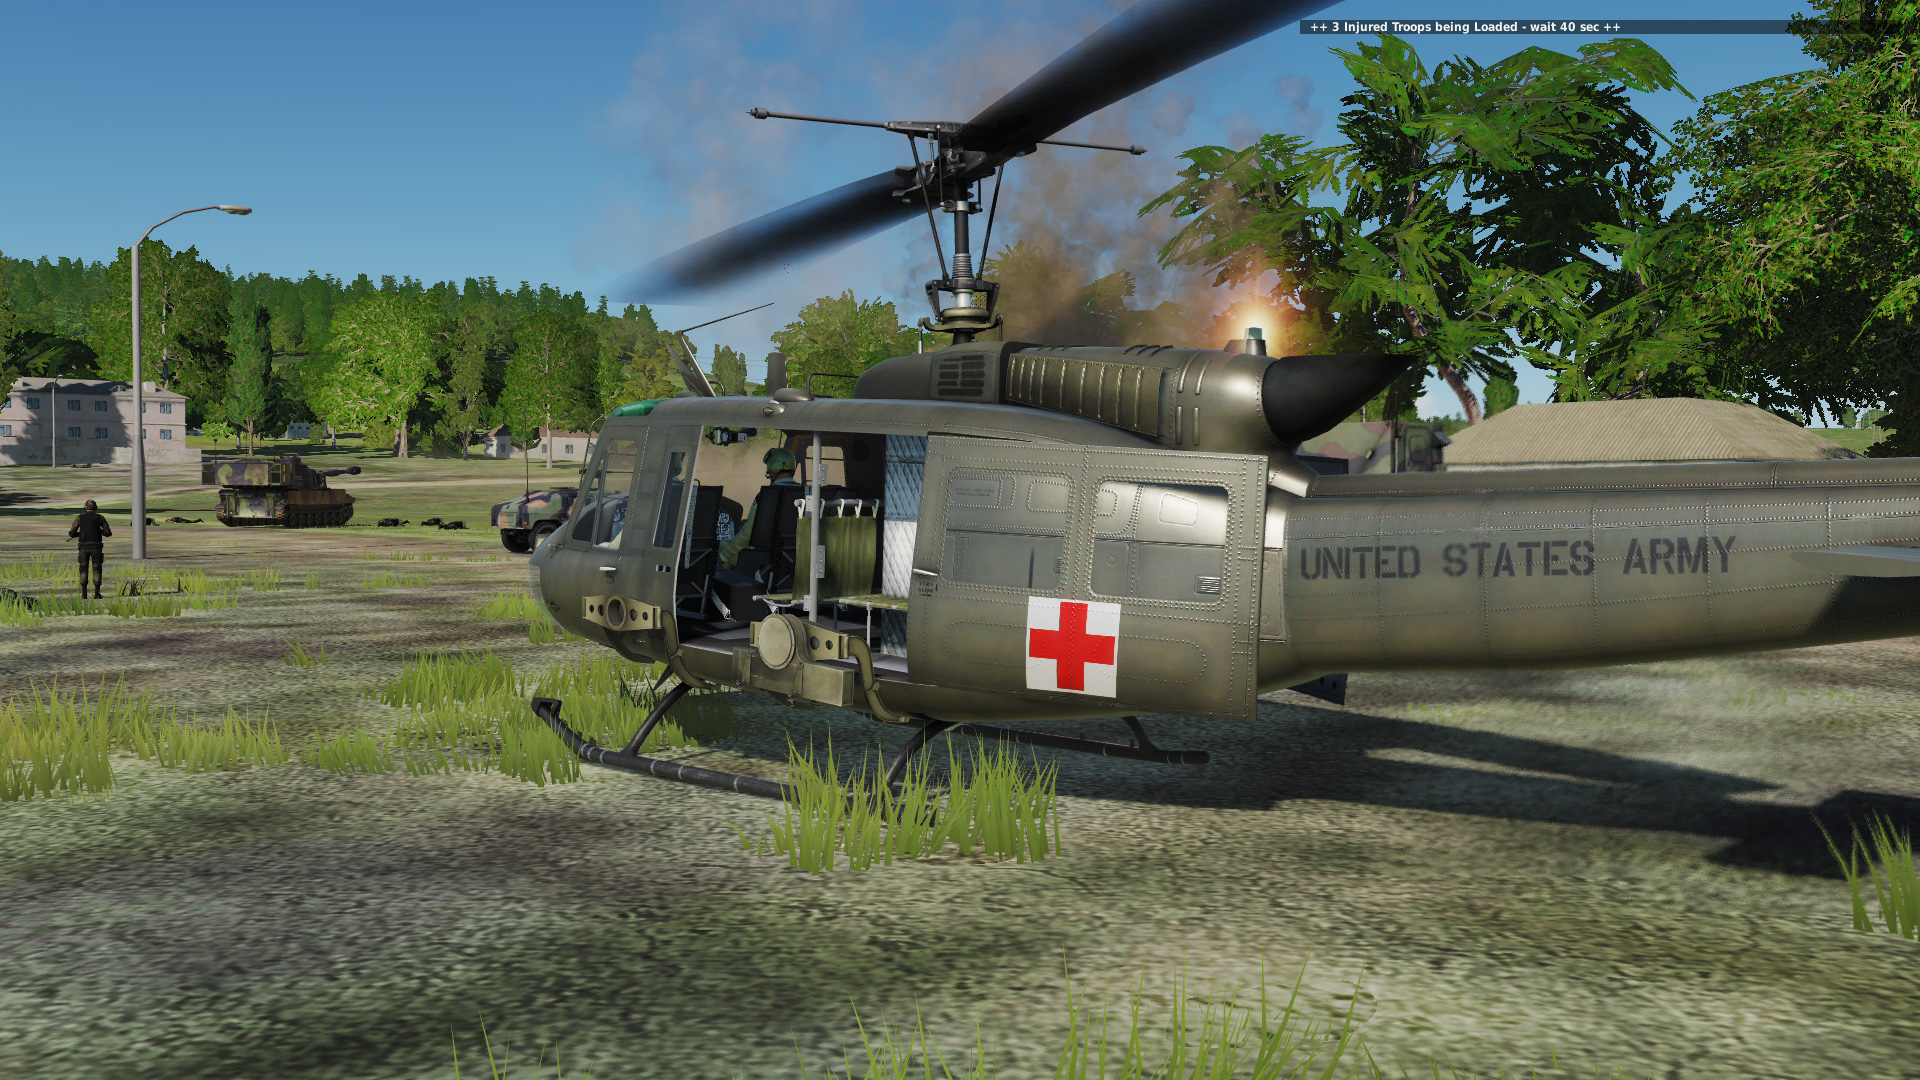 FARP Hollywood 003 - Battle of Bulitsku - Huey Medevac